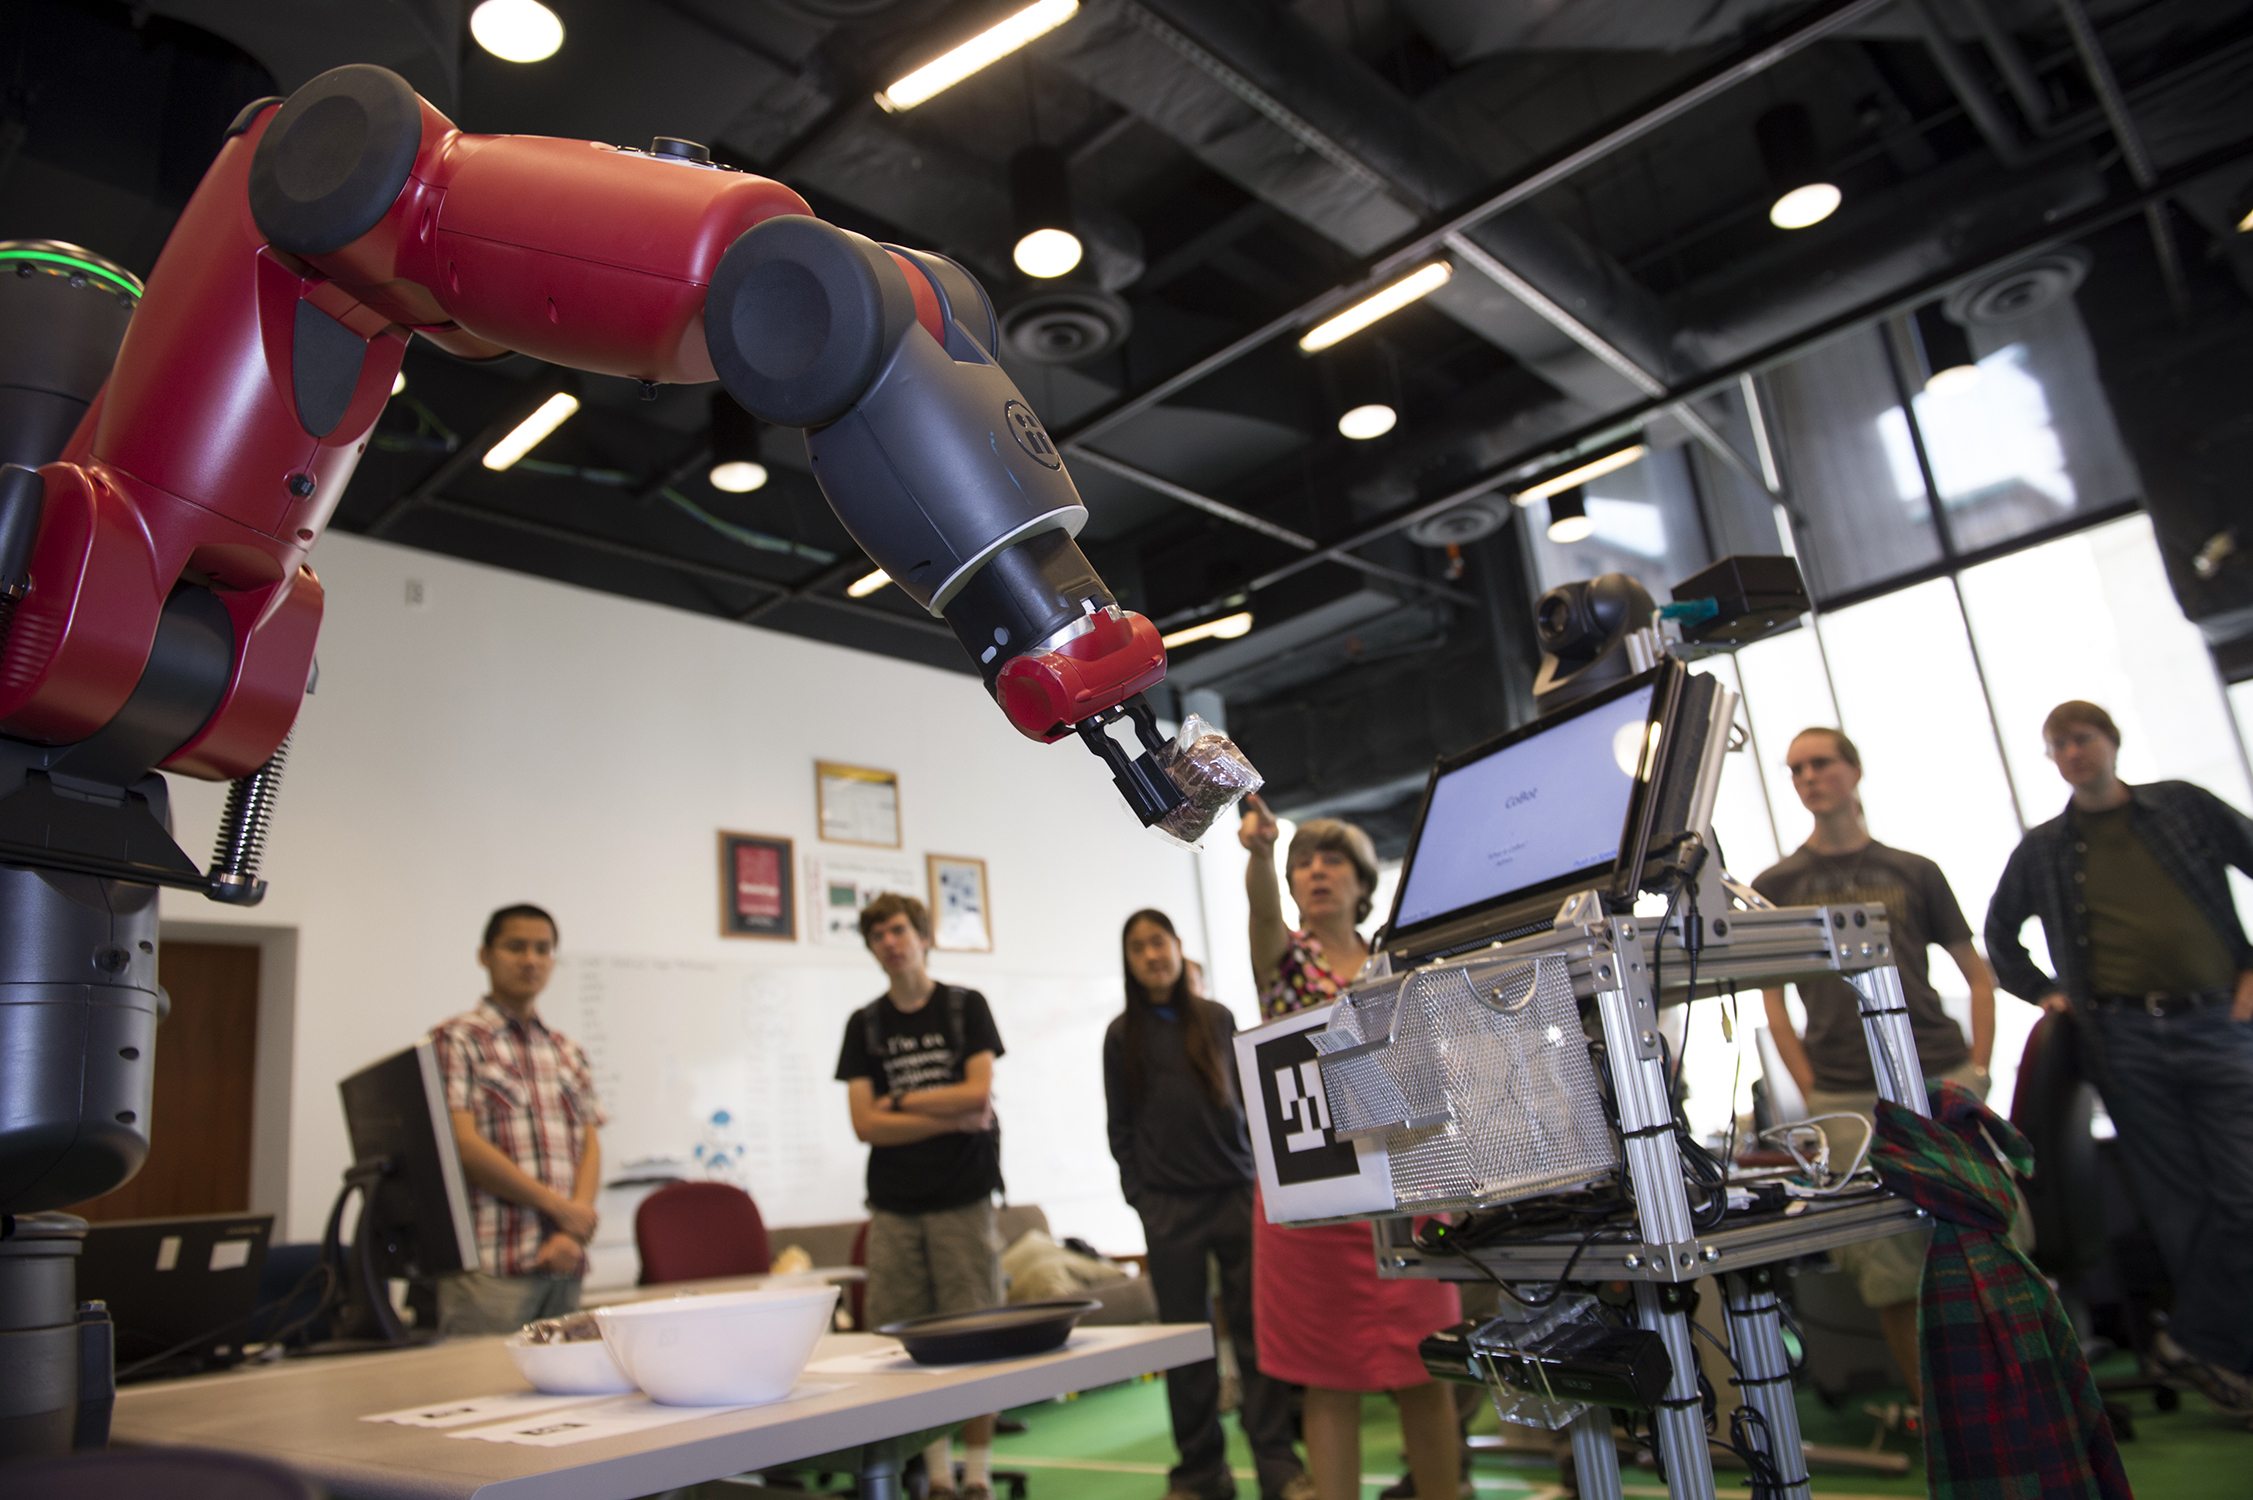 veloso lab welcomes baxter robot to campus